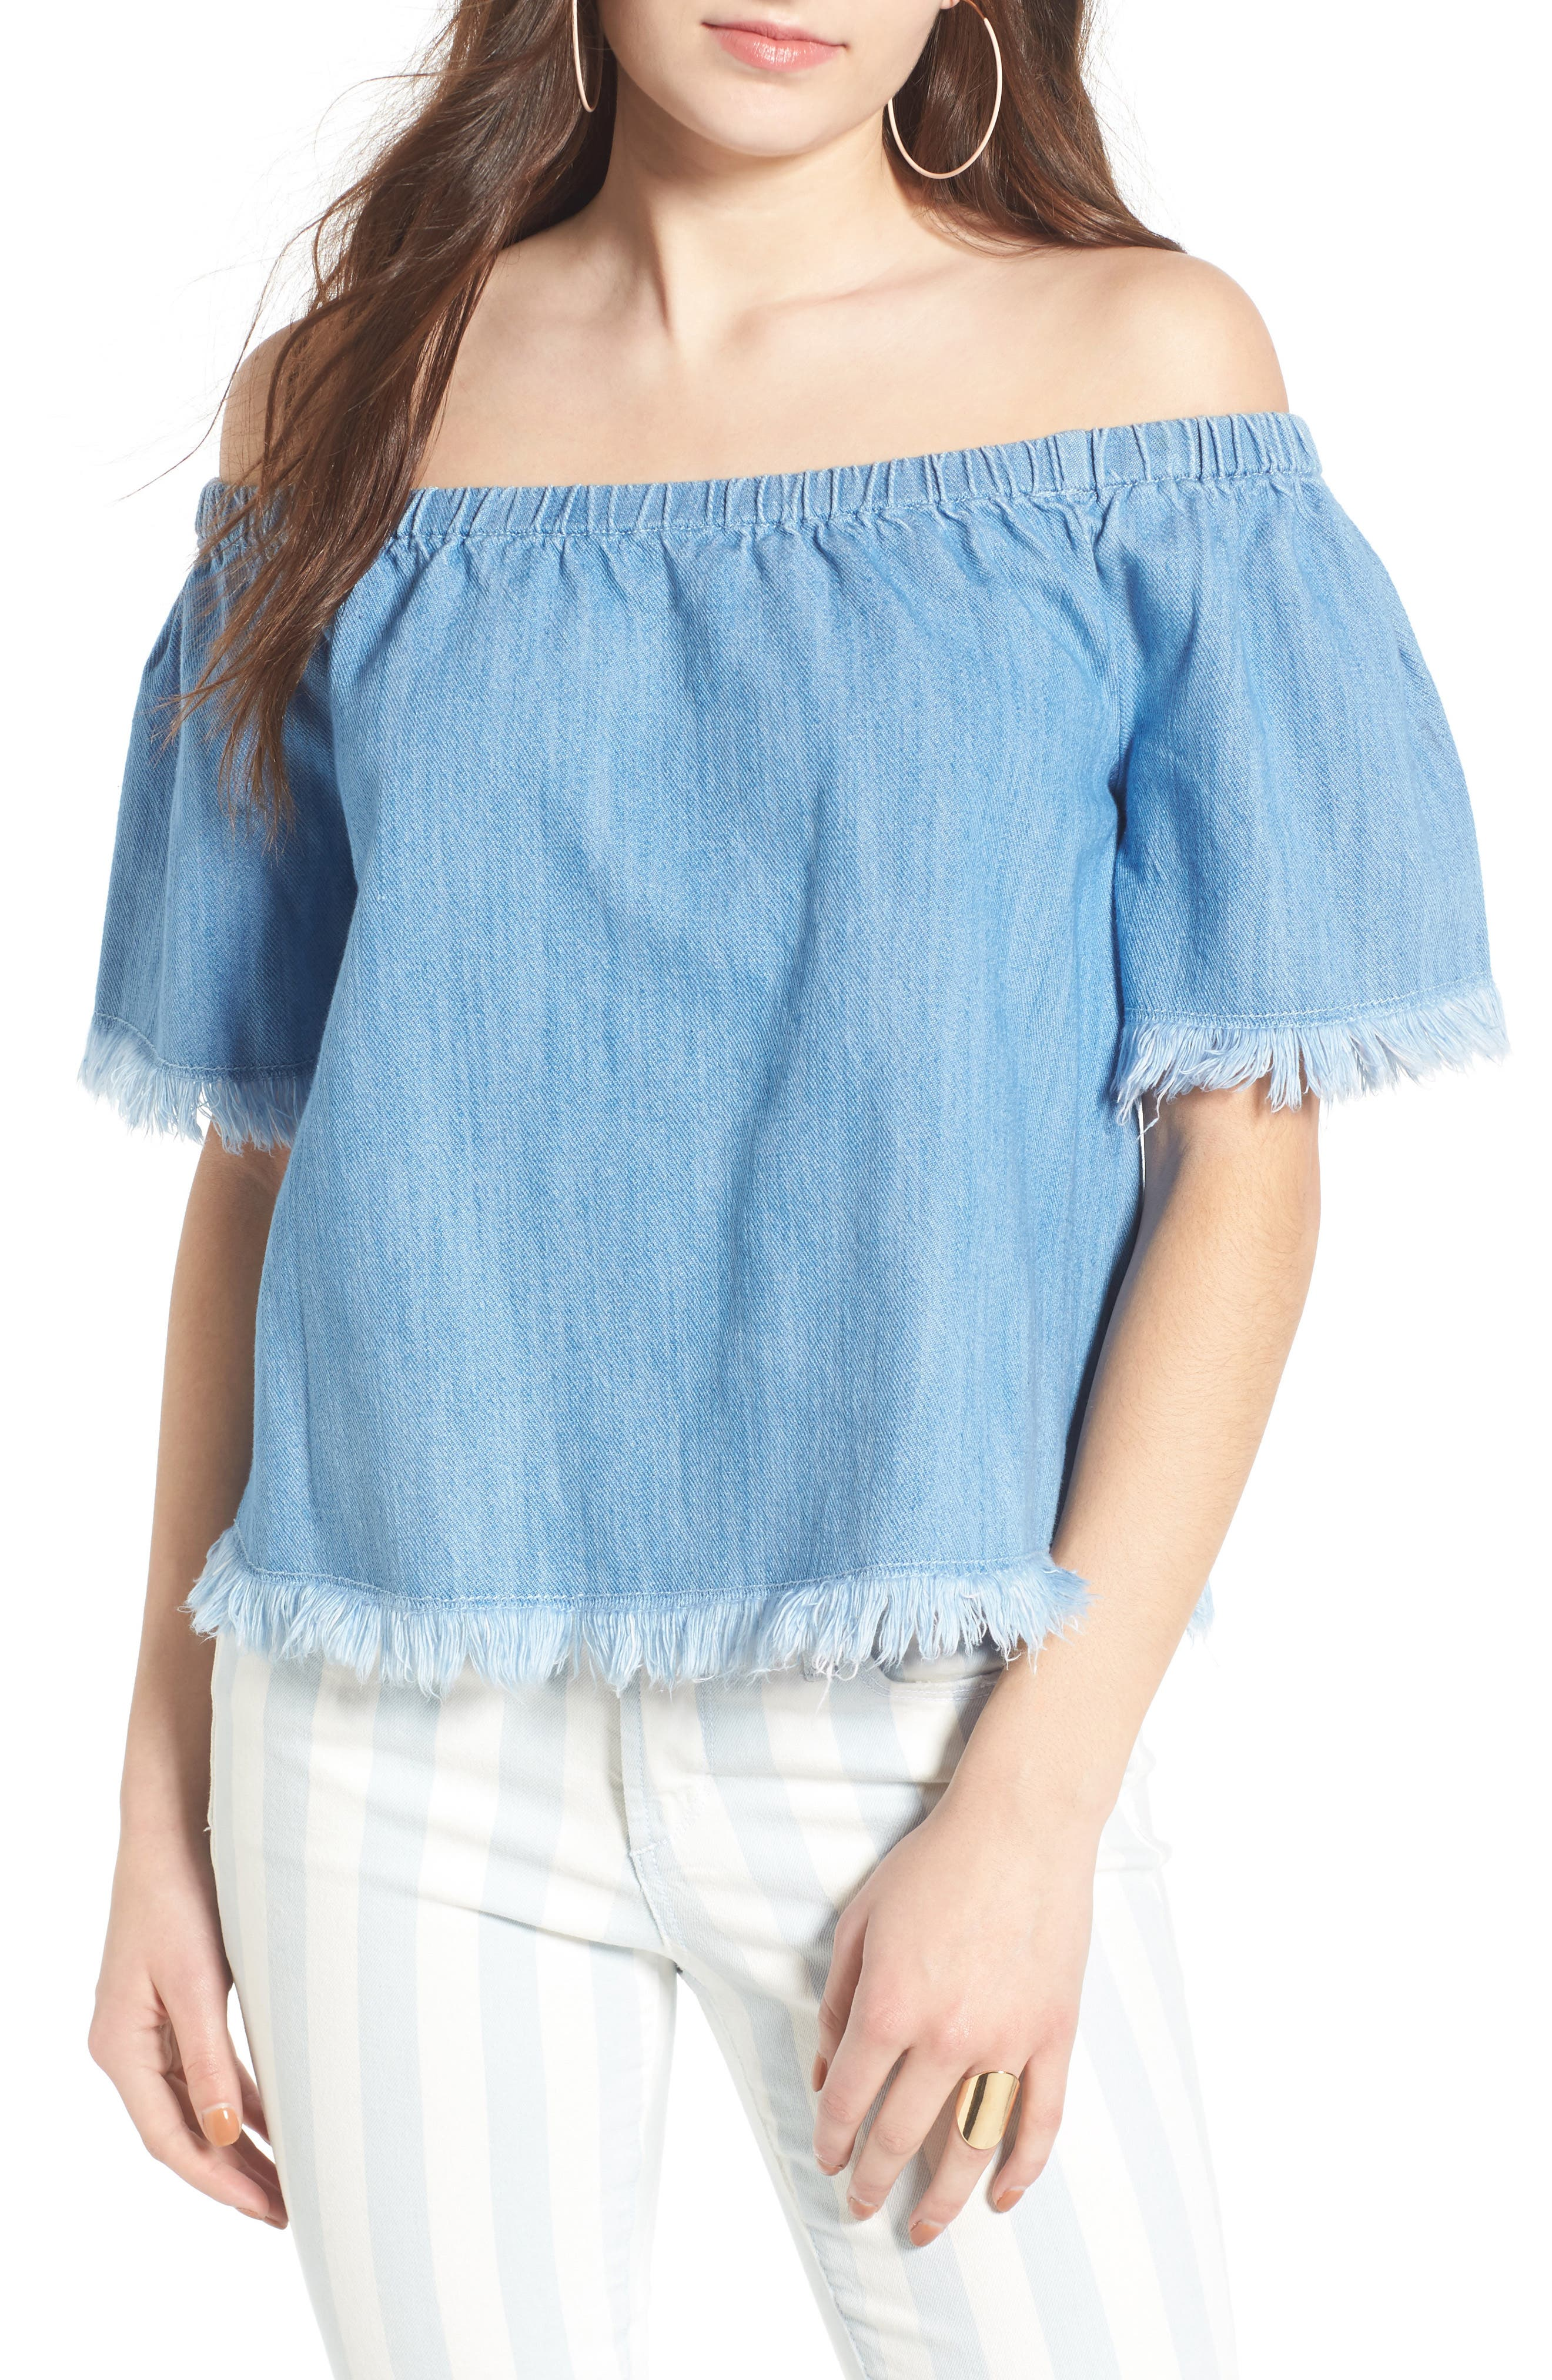 TINSEL,                             Frayed Denim Off the Shoulder Top,                             Main thumbnail 1, color,                             430